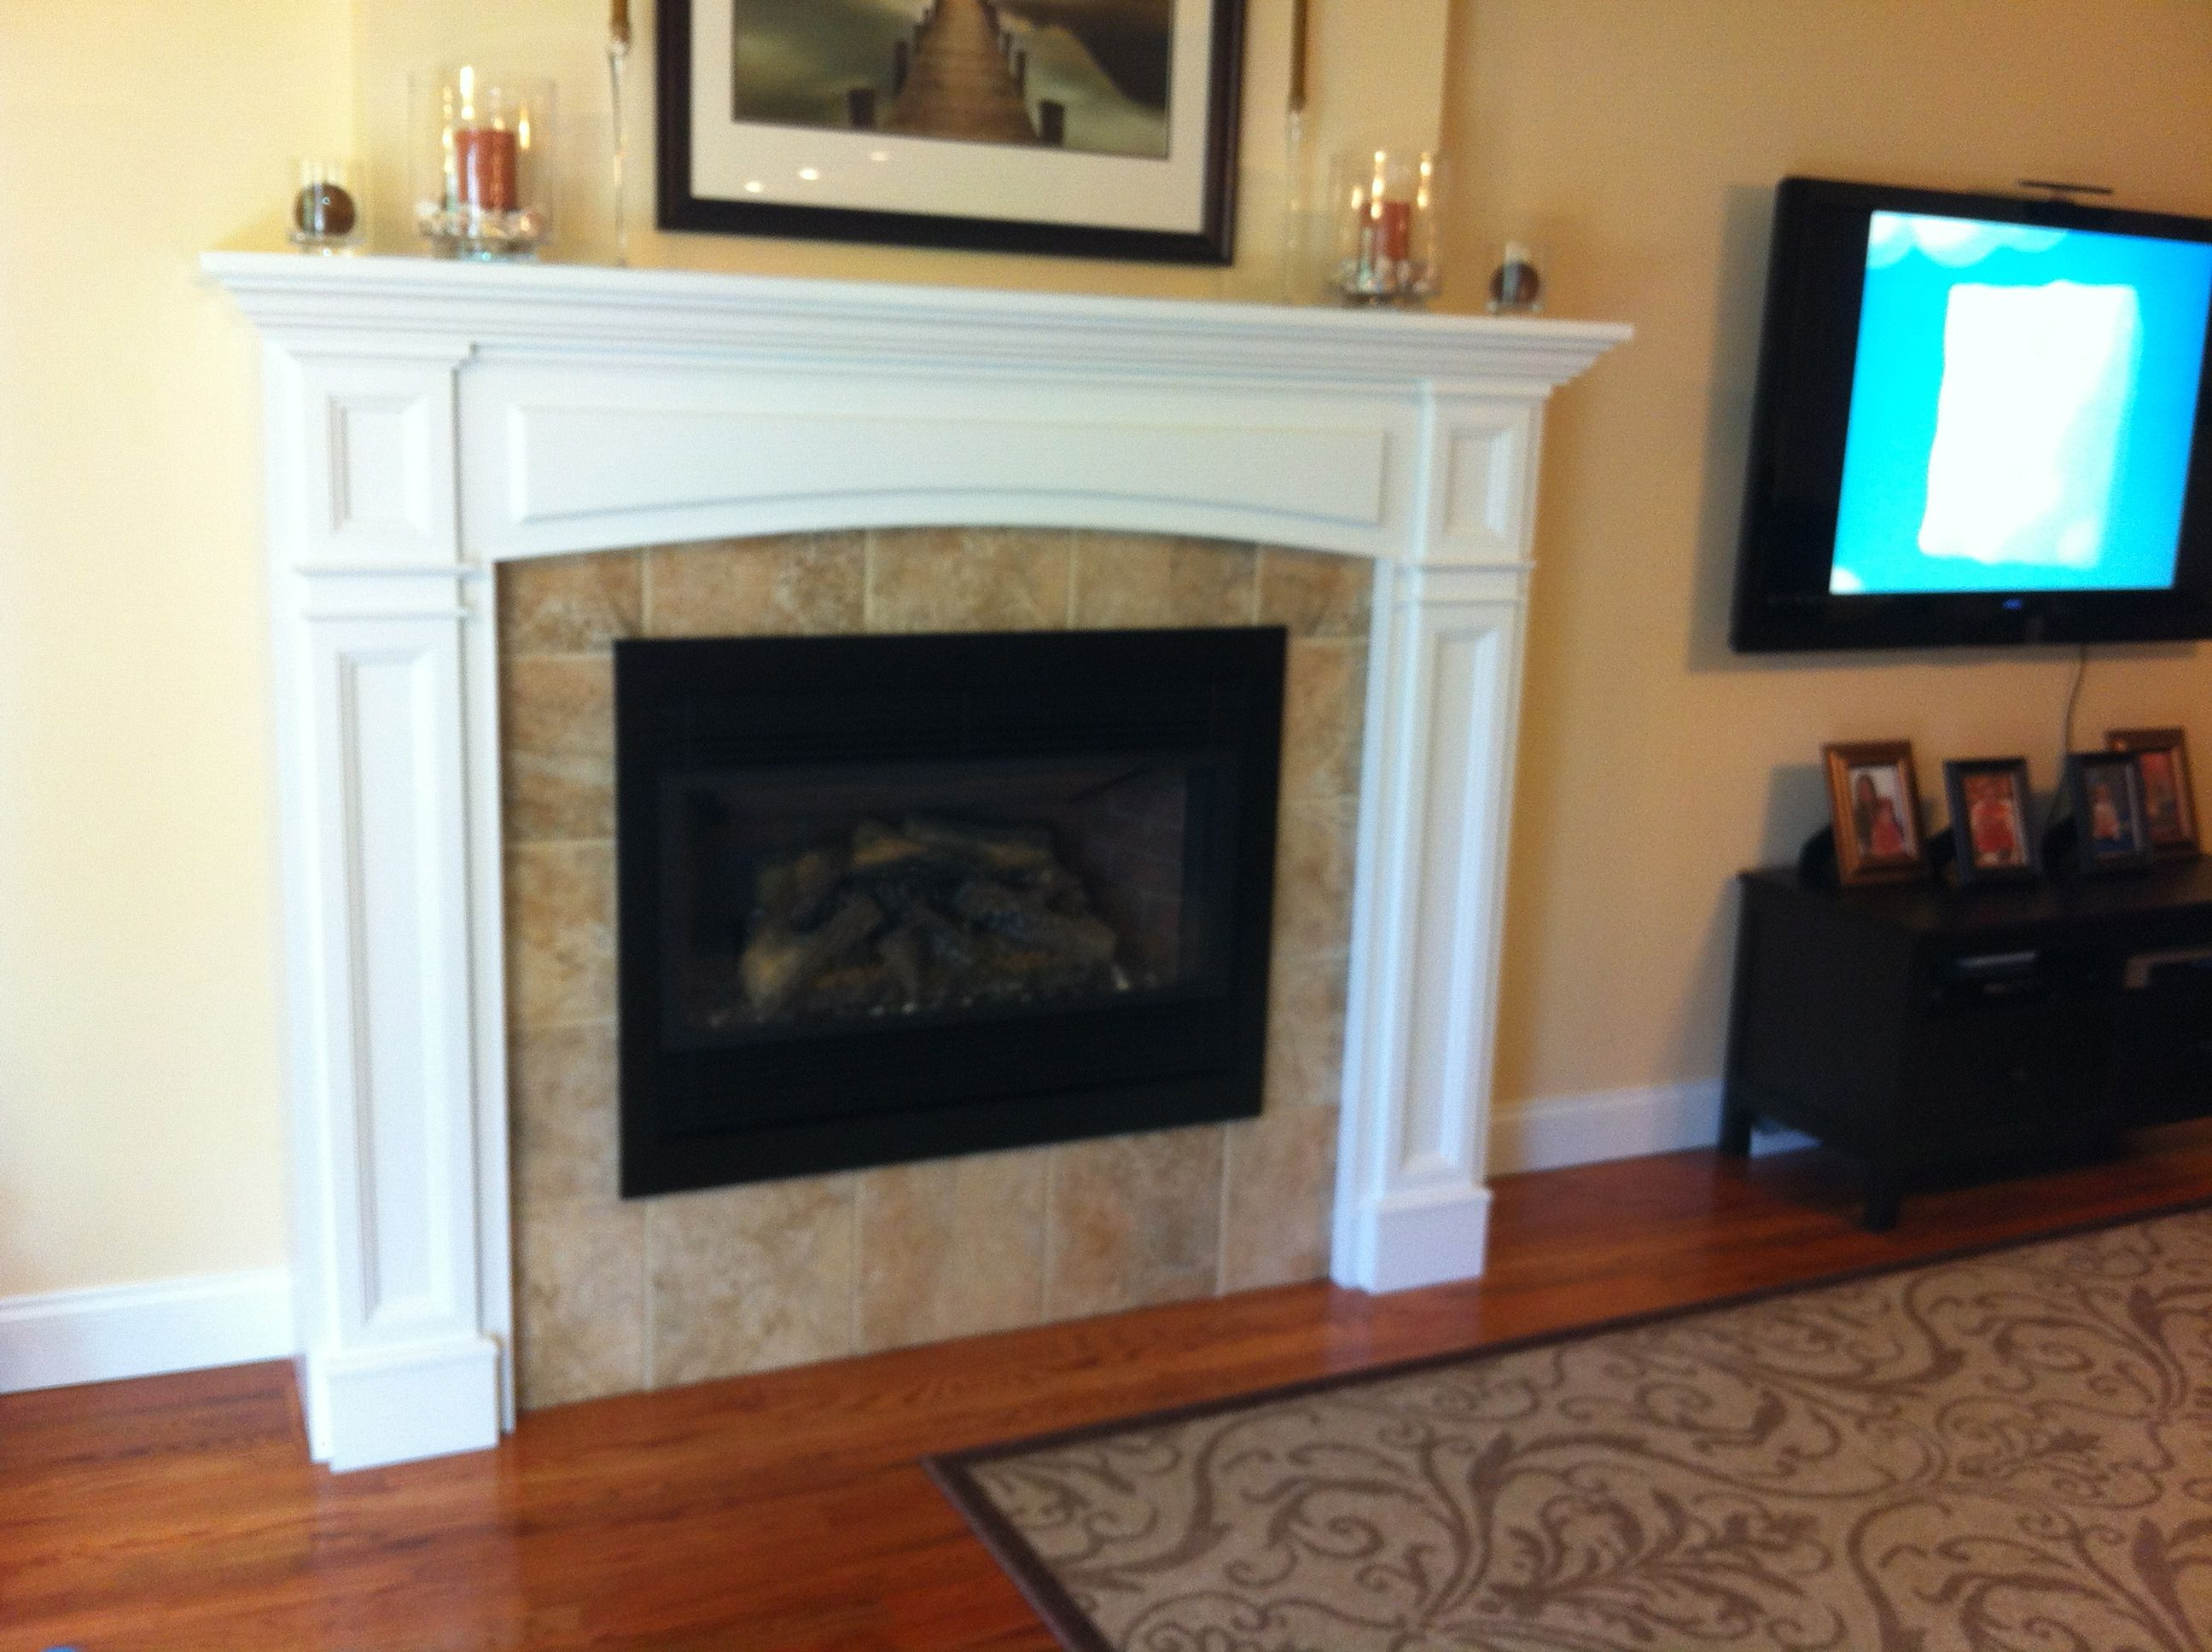 gas fireplace insert tile face of fireplace no hearth fluted